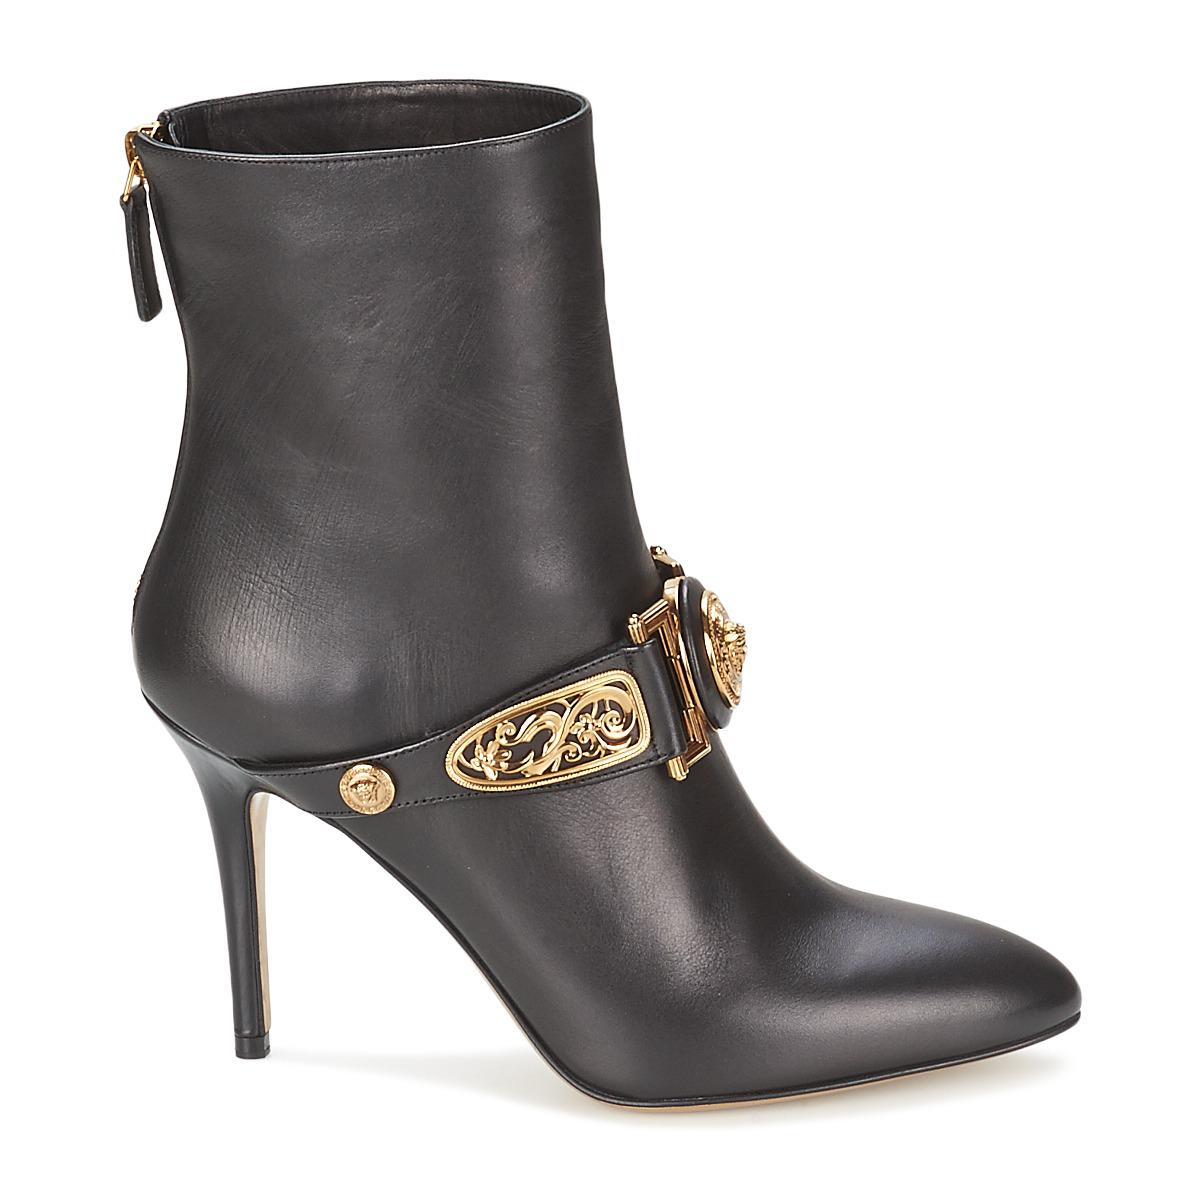 Versace Leather Iris Women's Low Ankle Boots In Black